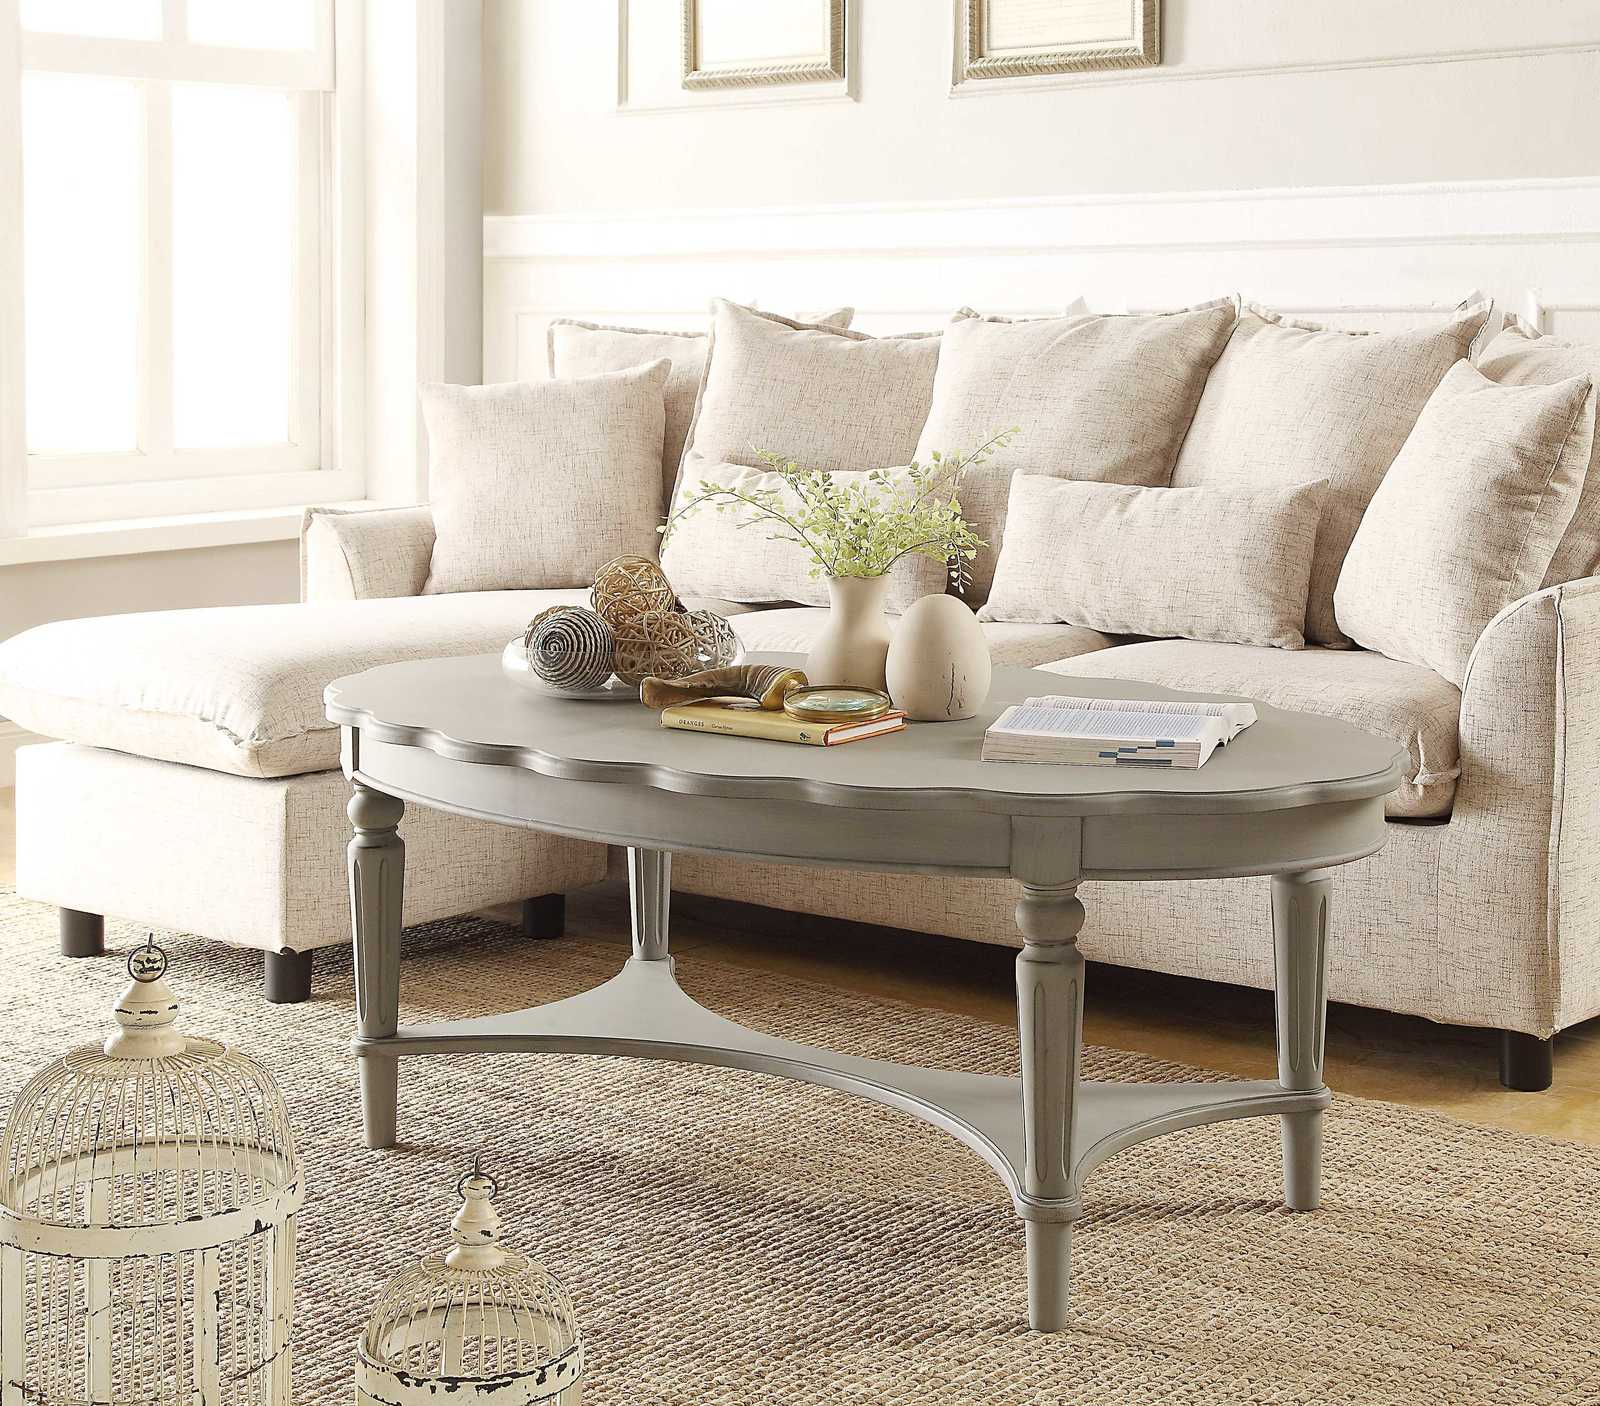 Antique White And Oak Coffee Tables: Coffee Table In Antique White